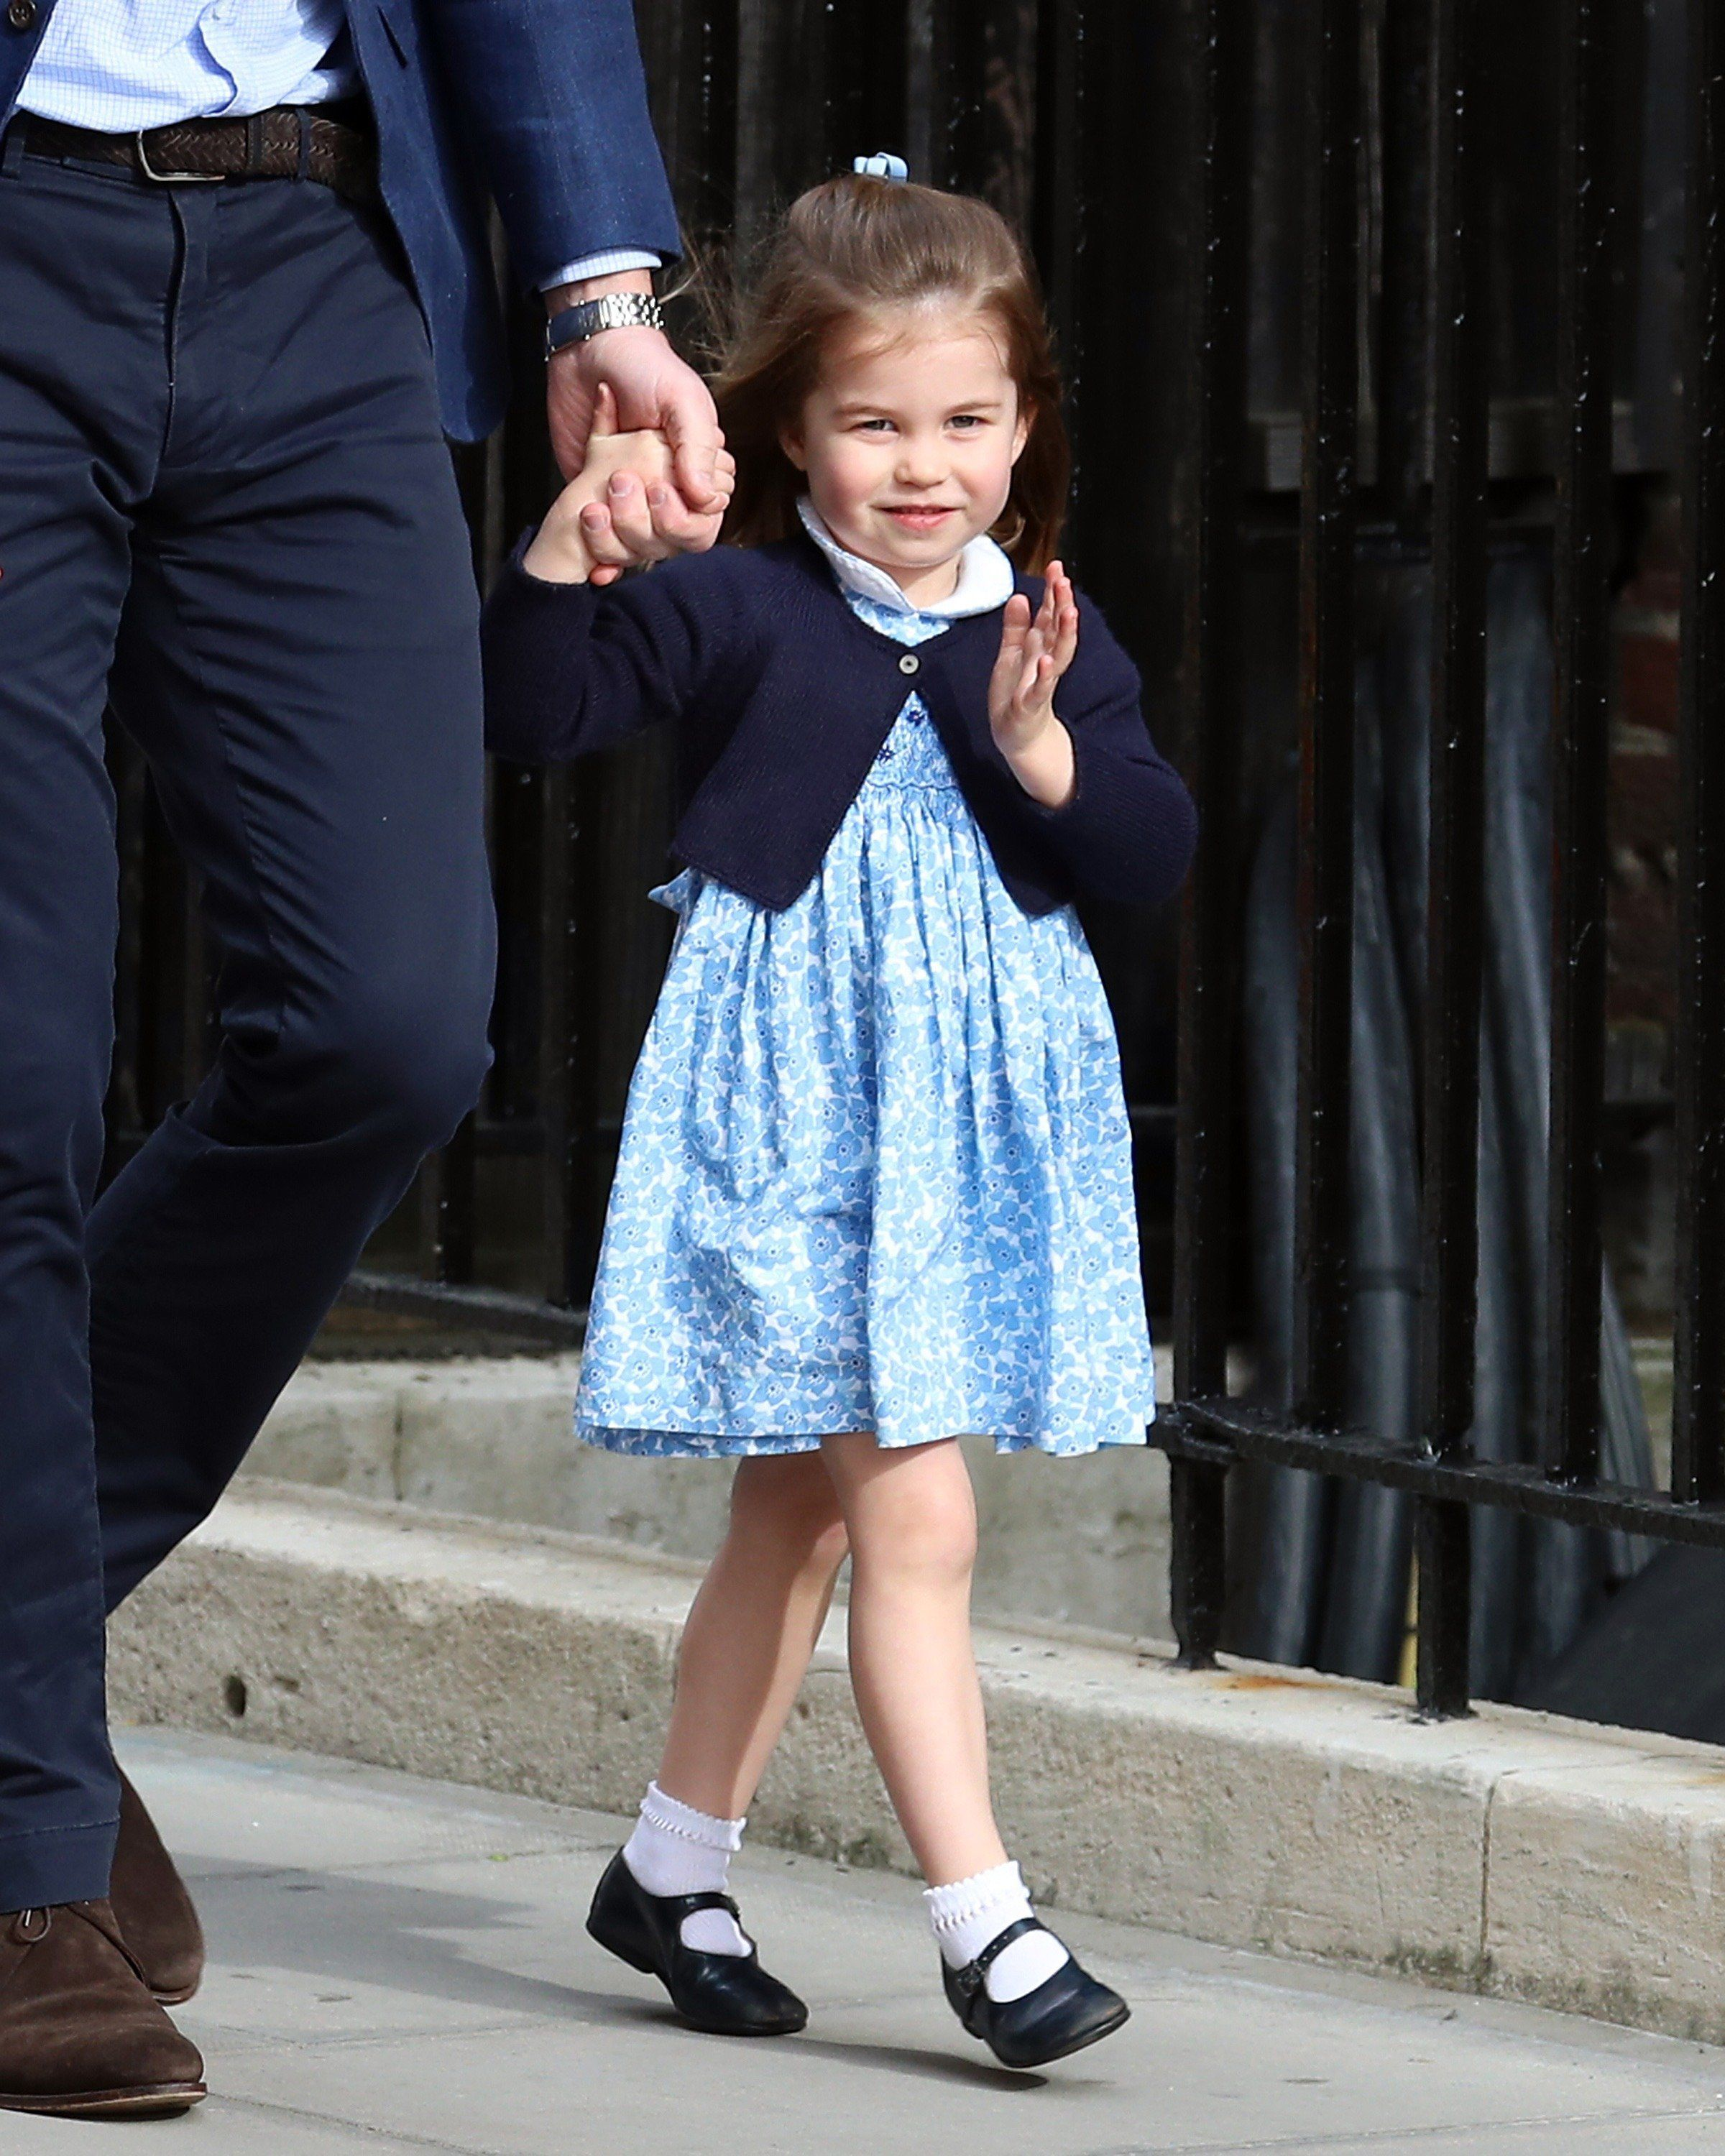 LONDON, ENGLAND - APRIL 23:  Prince William, Duke of Cambridge and Princess Charlotte arrive with Prince George at the Lindo Wing after the birth of his third child on April 23, 2018 in London, England. The Duchess of Cambridge gave birth to a boy at 11:01 BST, weighing 8lb 7oz.  (Photo by Neil Mockford/GC Images)